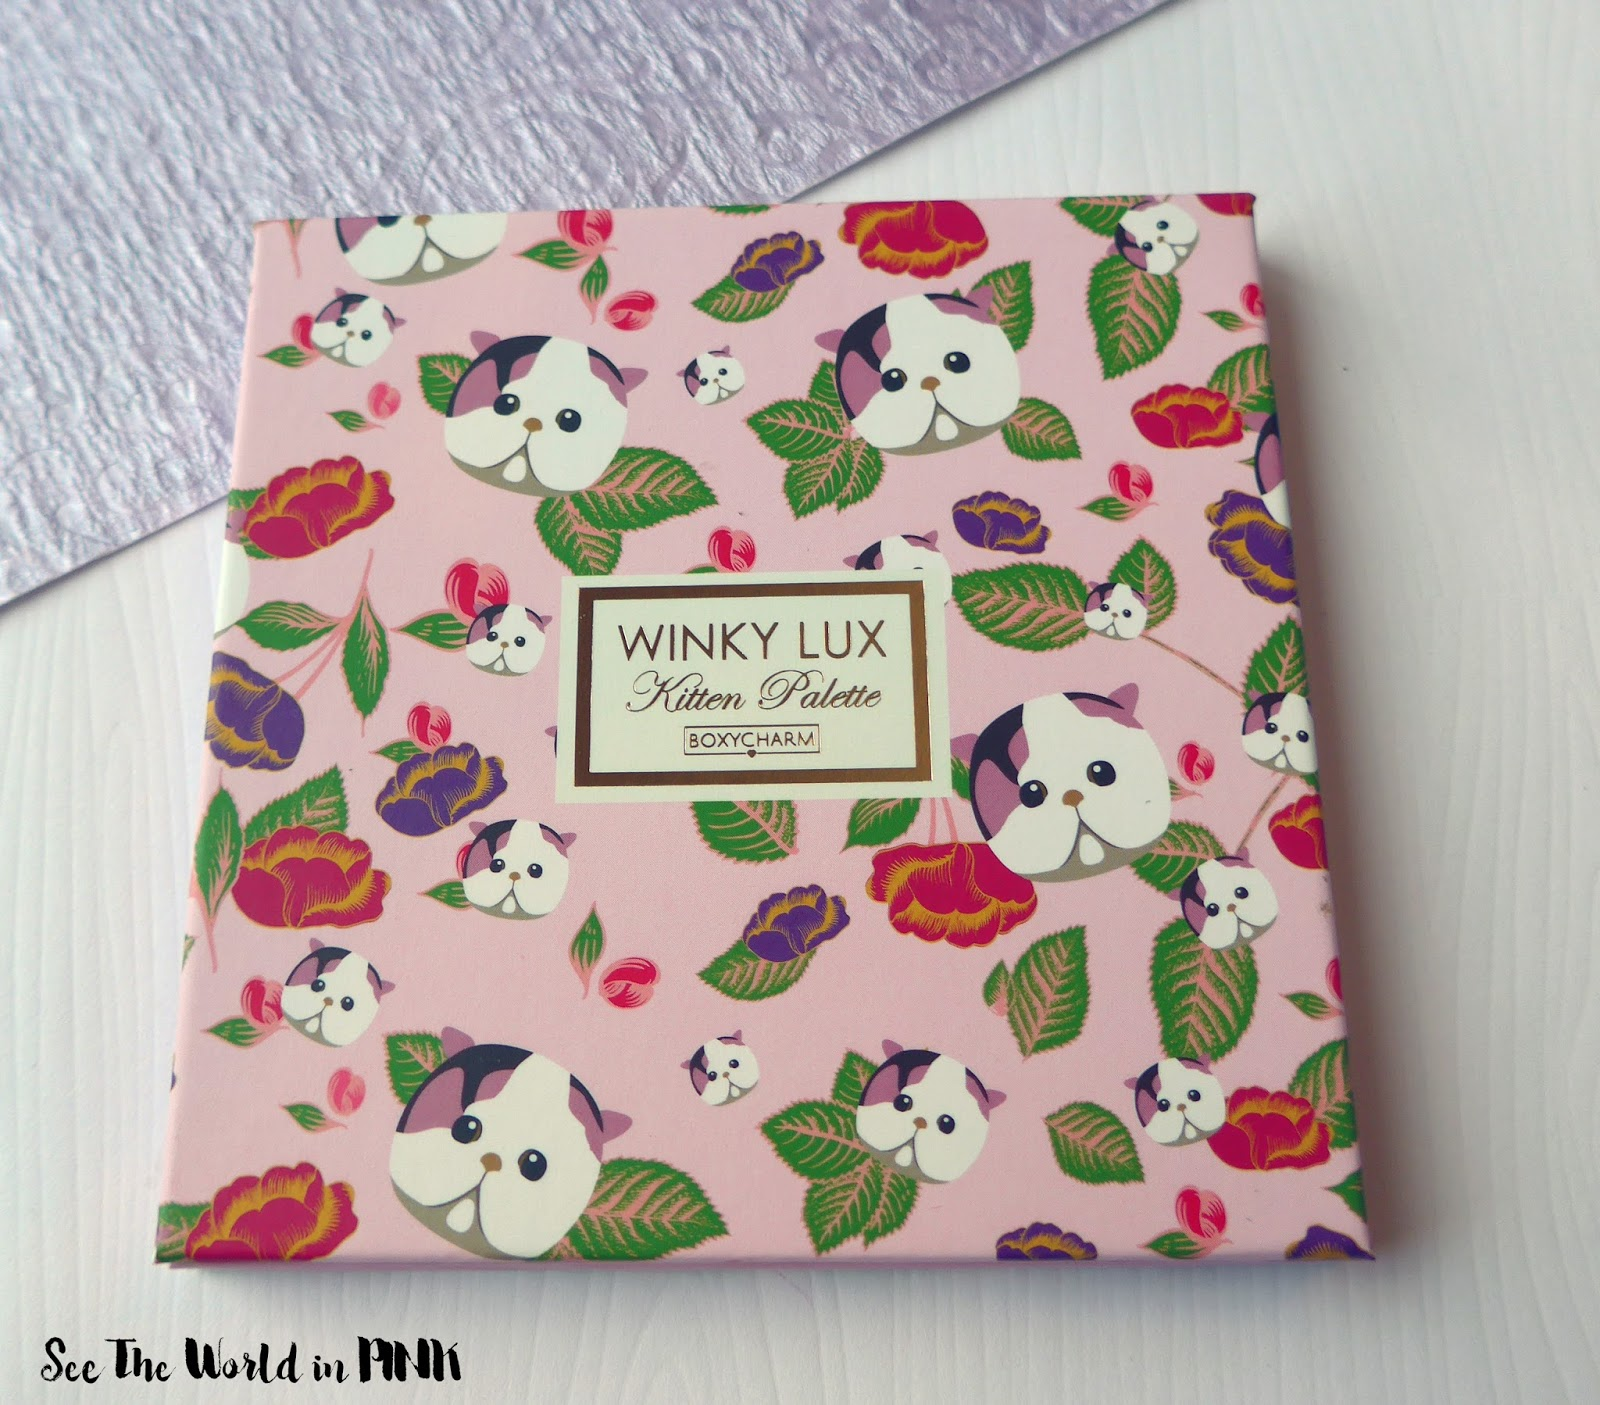 Winky Lux Kitten Palette - Review, Swatches and Makeup Look!